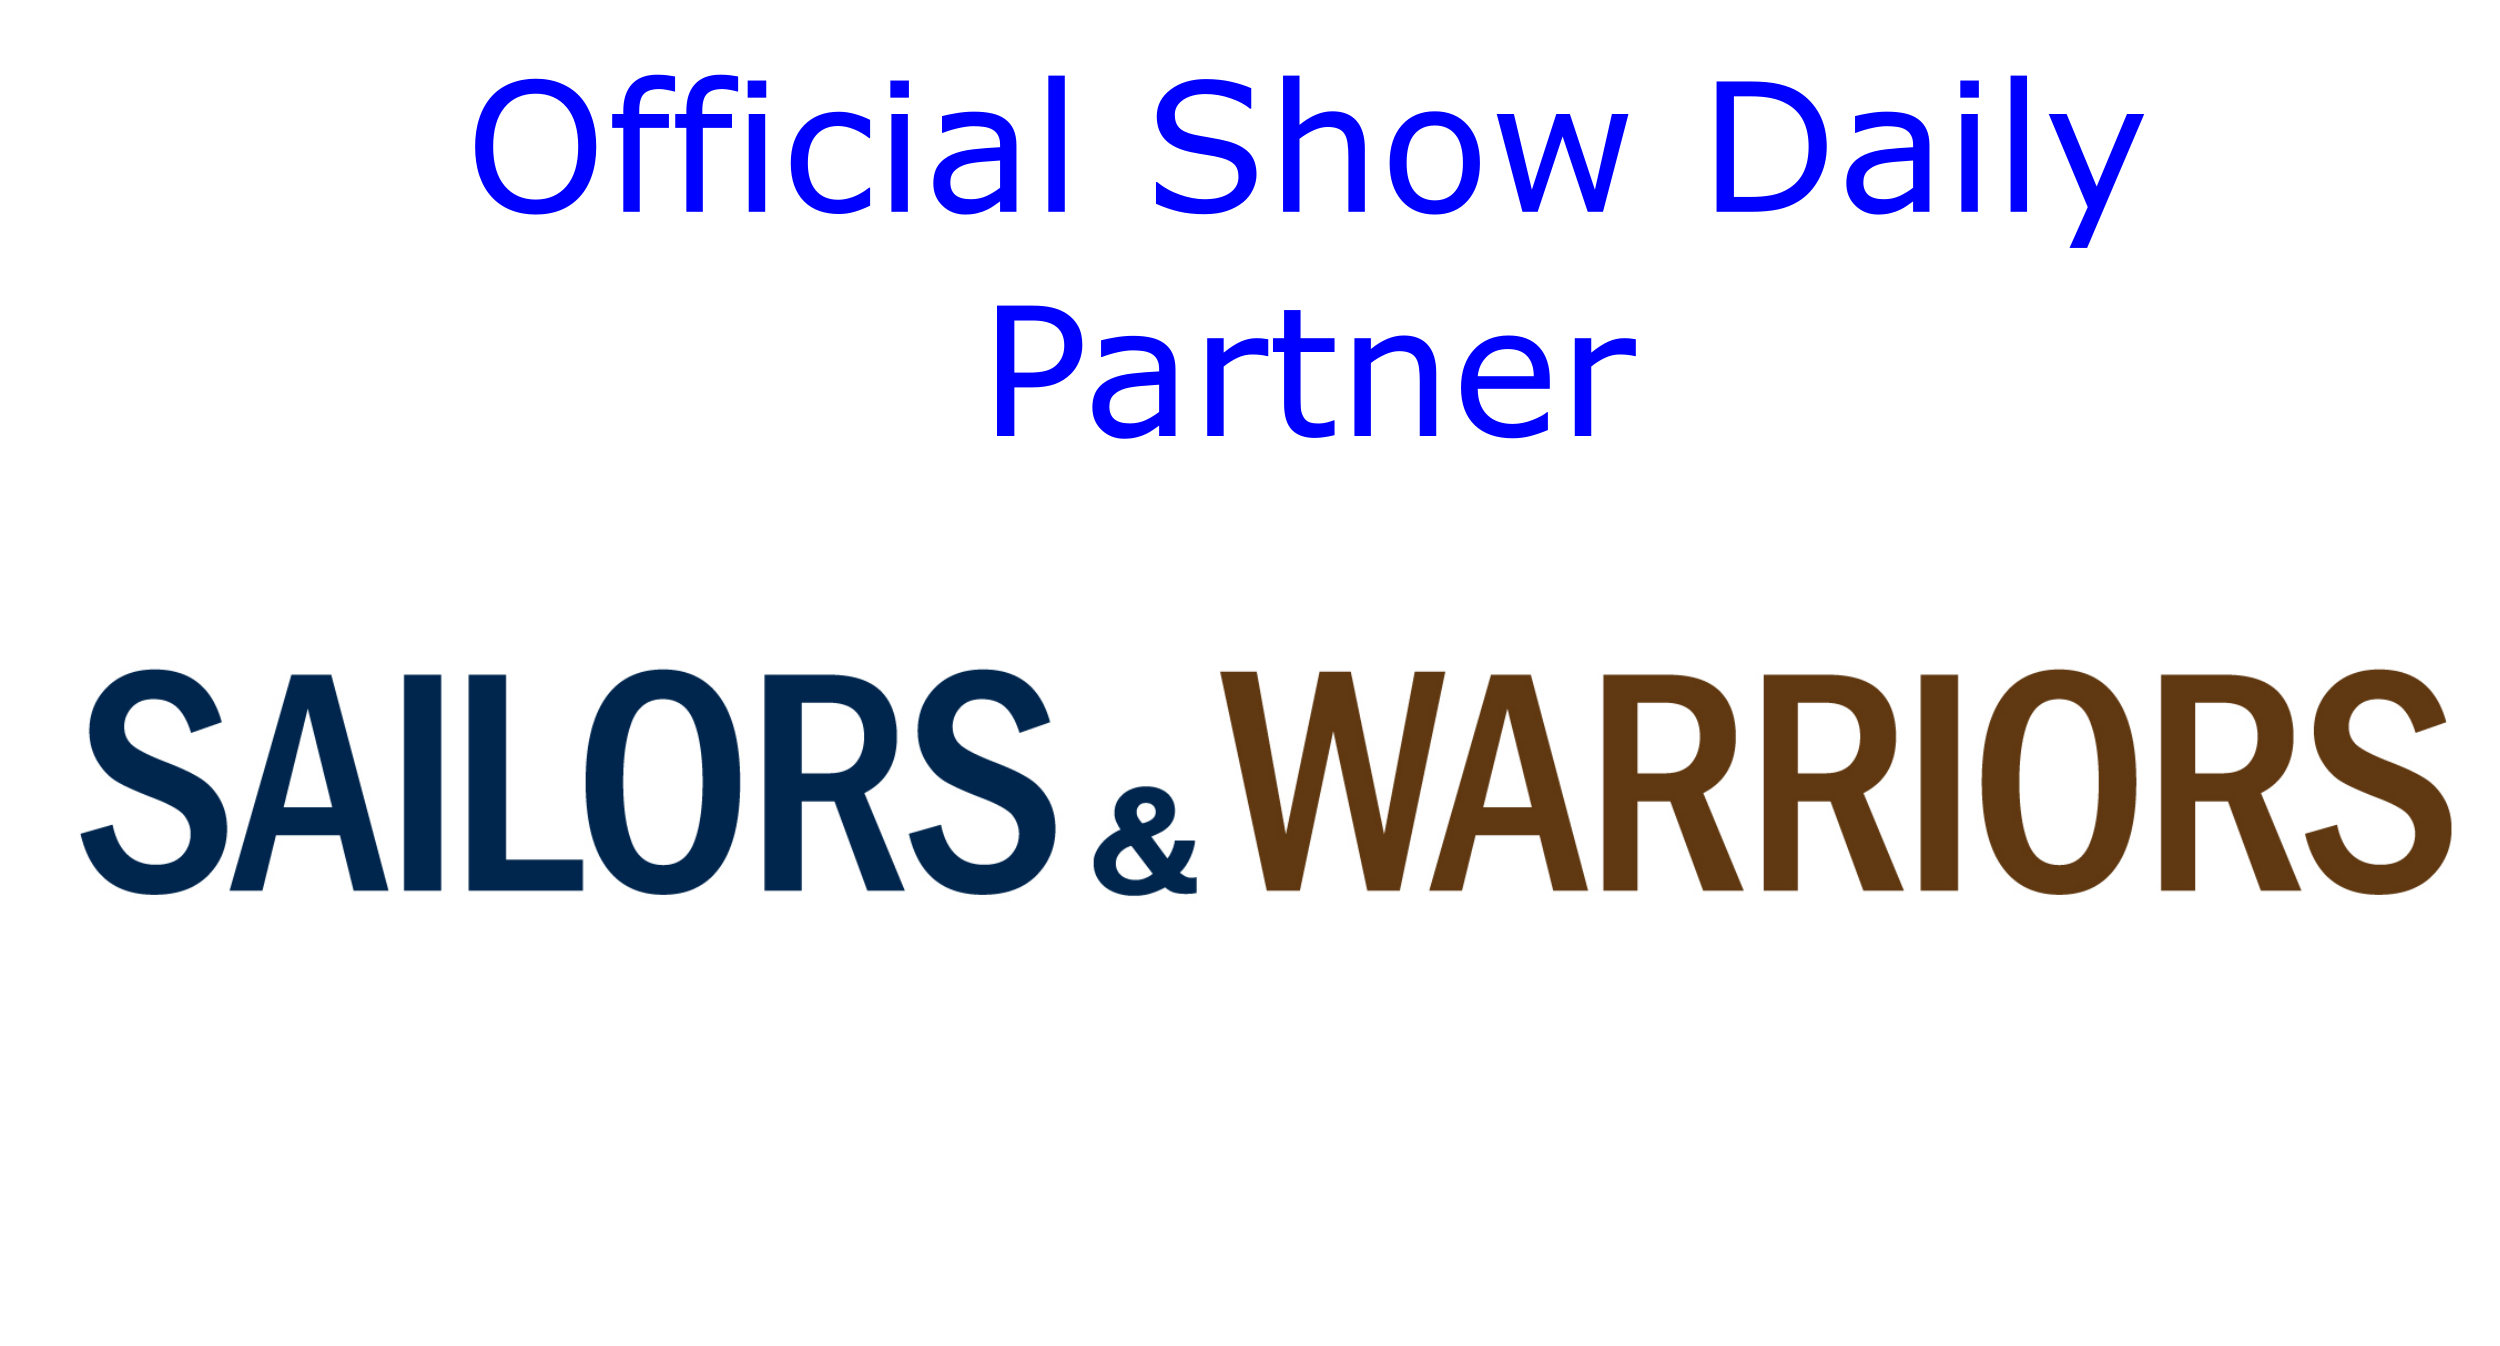 Official Show Daily Partner